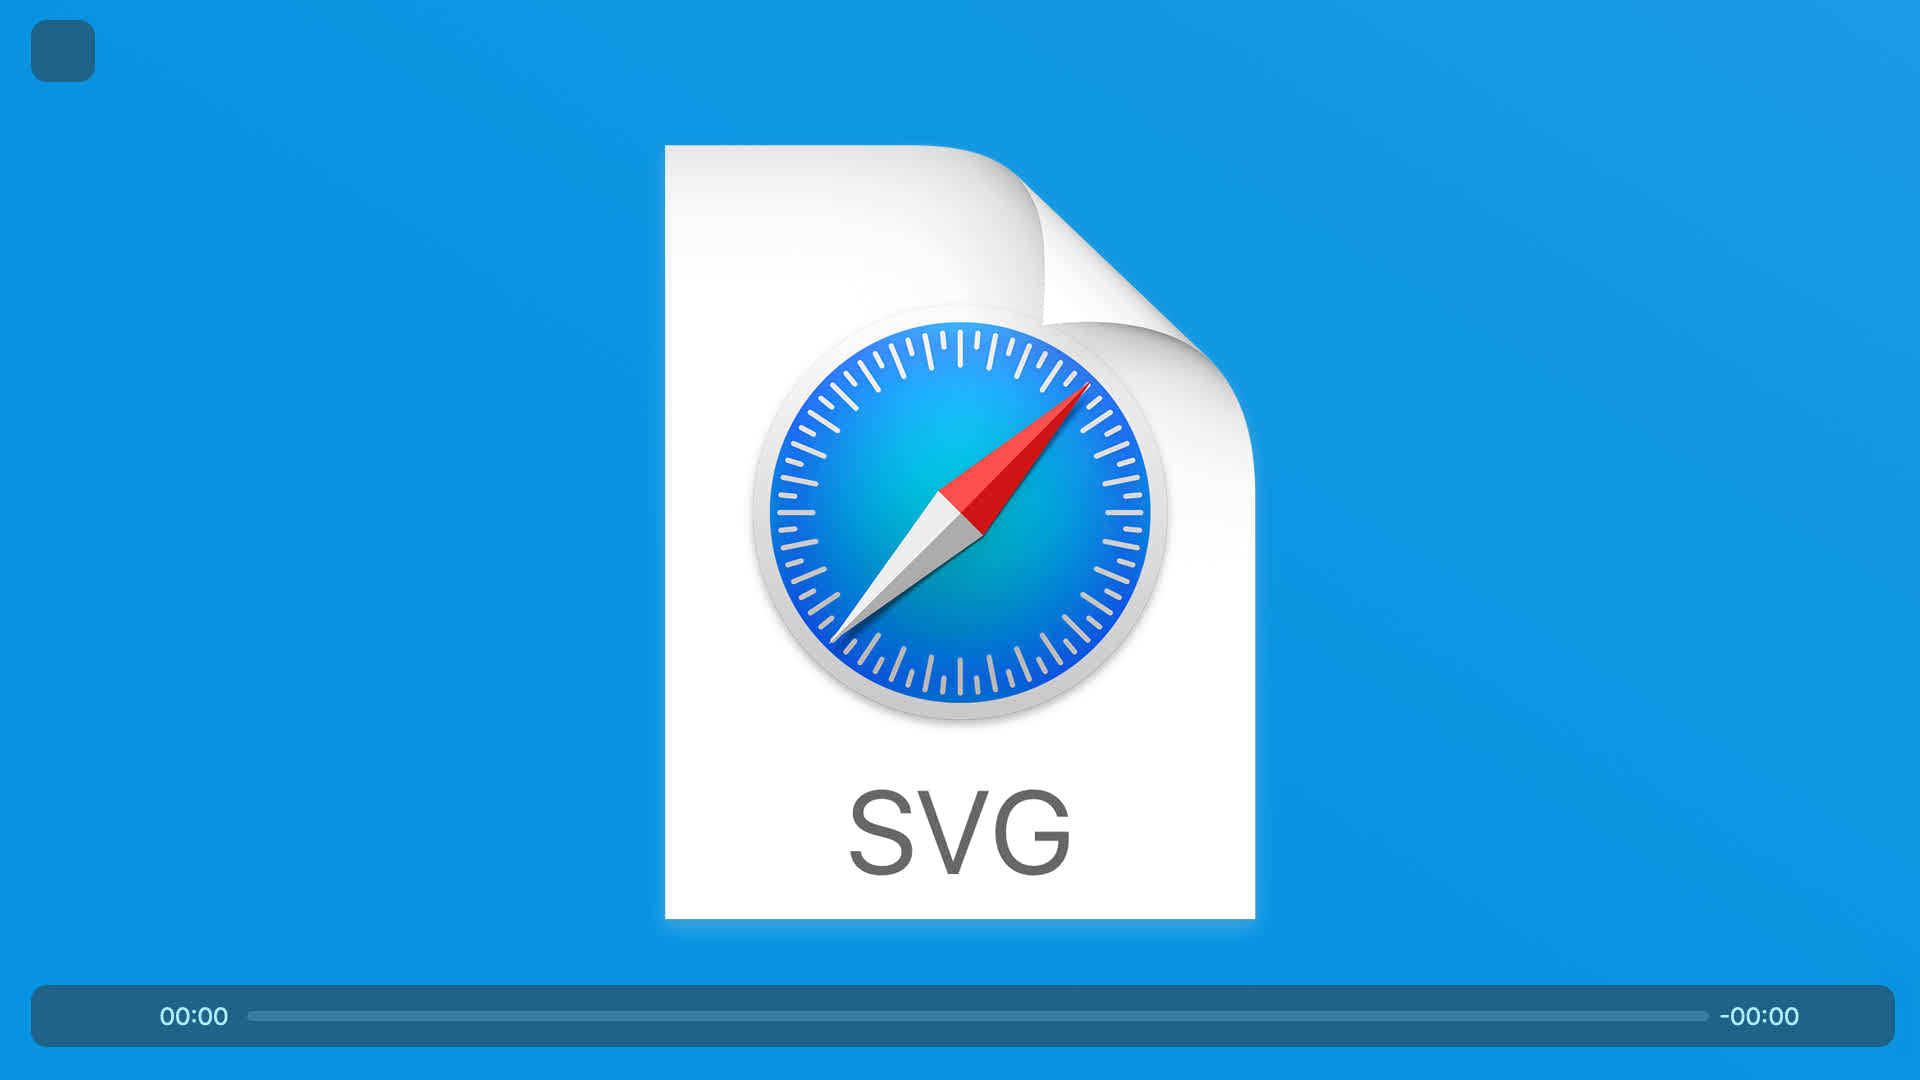 Safari SVG media player assets